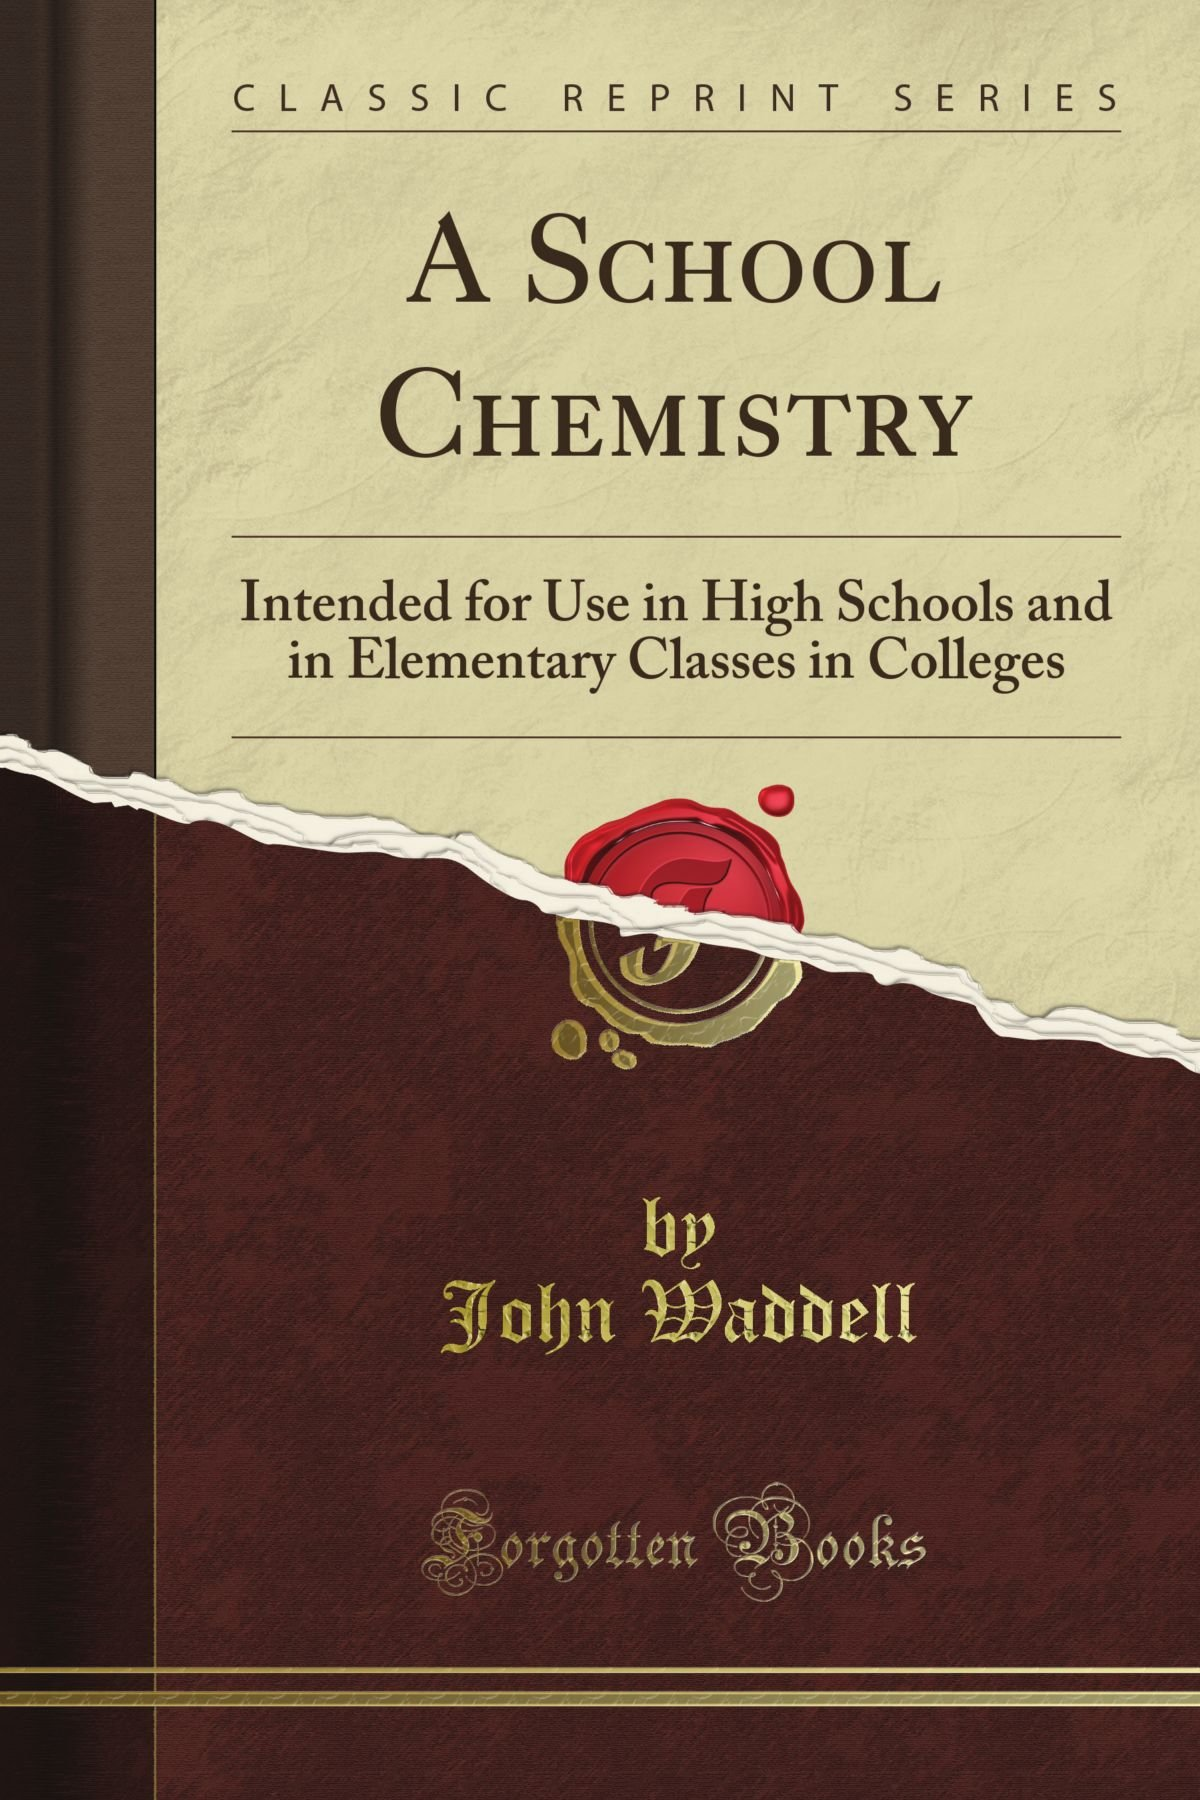 A School Chemistry: Intended for Use in High Schools and in Elementary Classes in Colleges (Classic Reprint) PDF